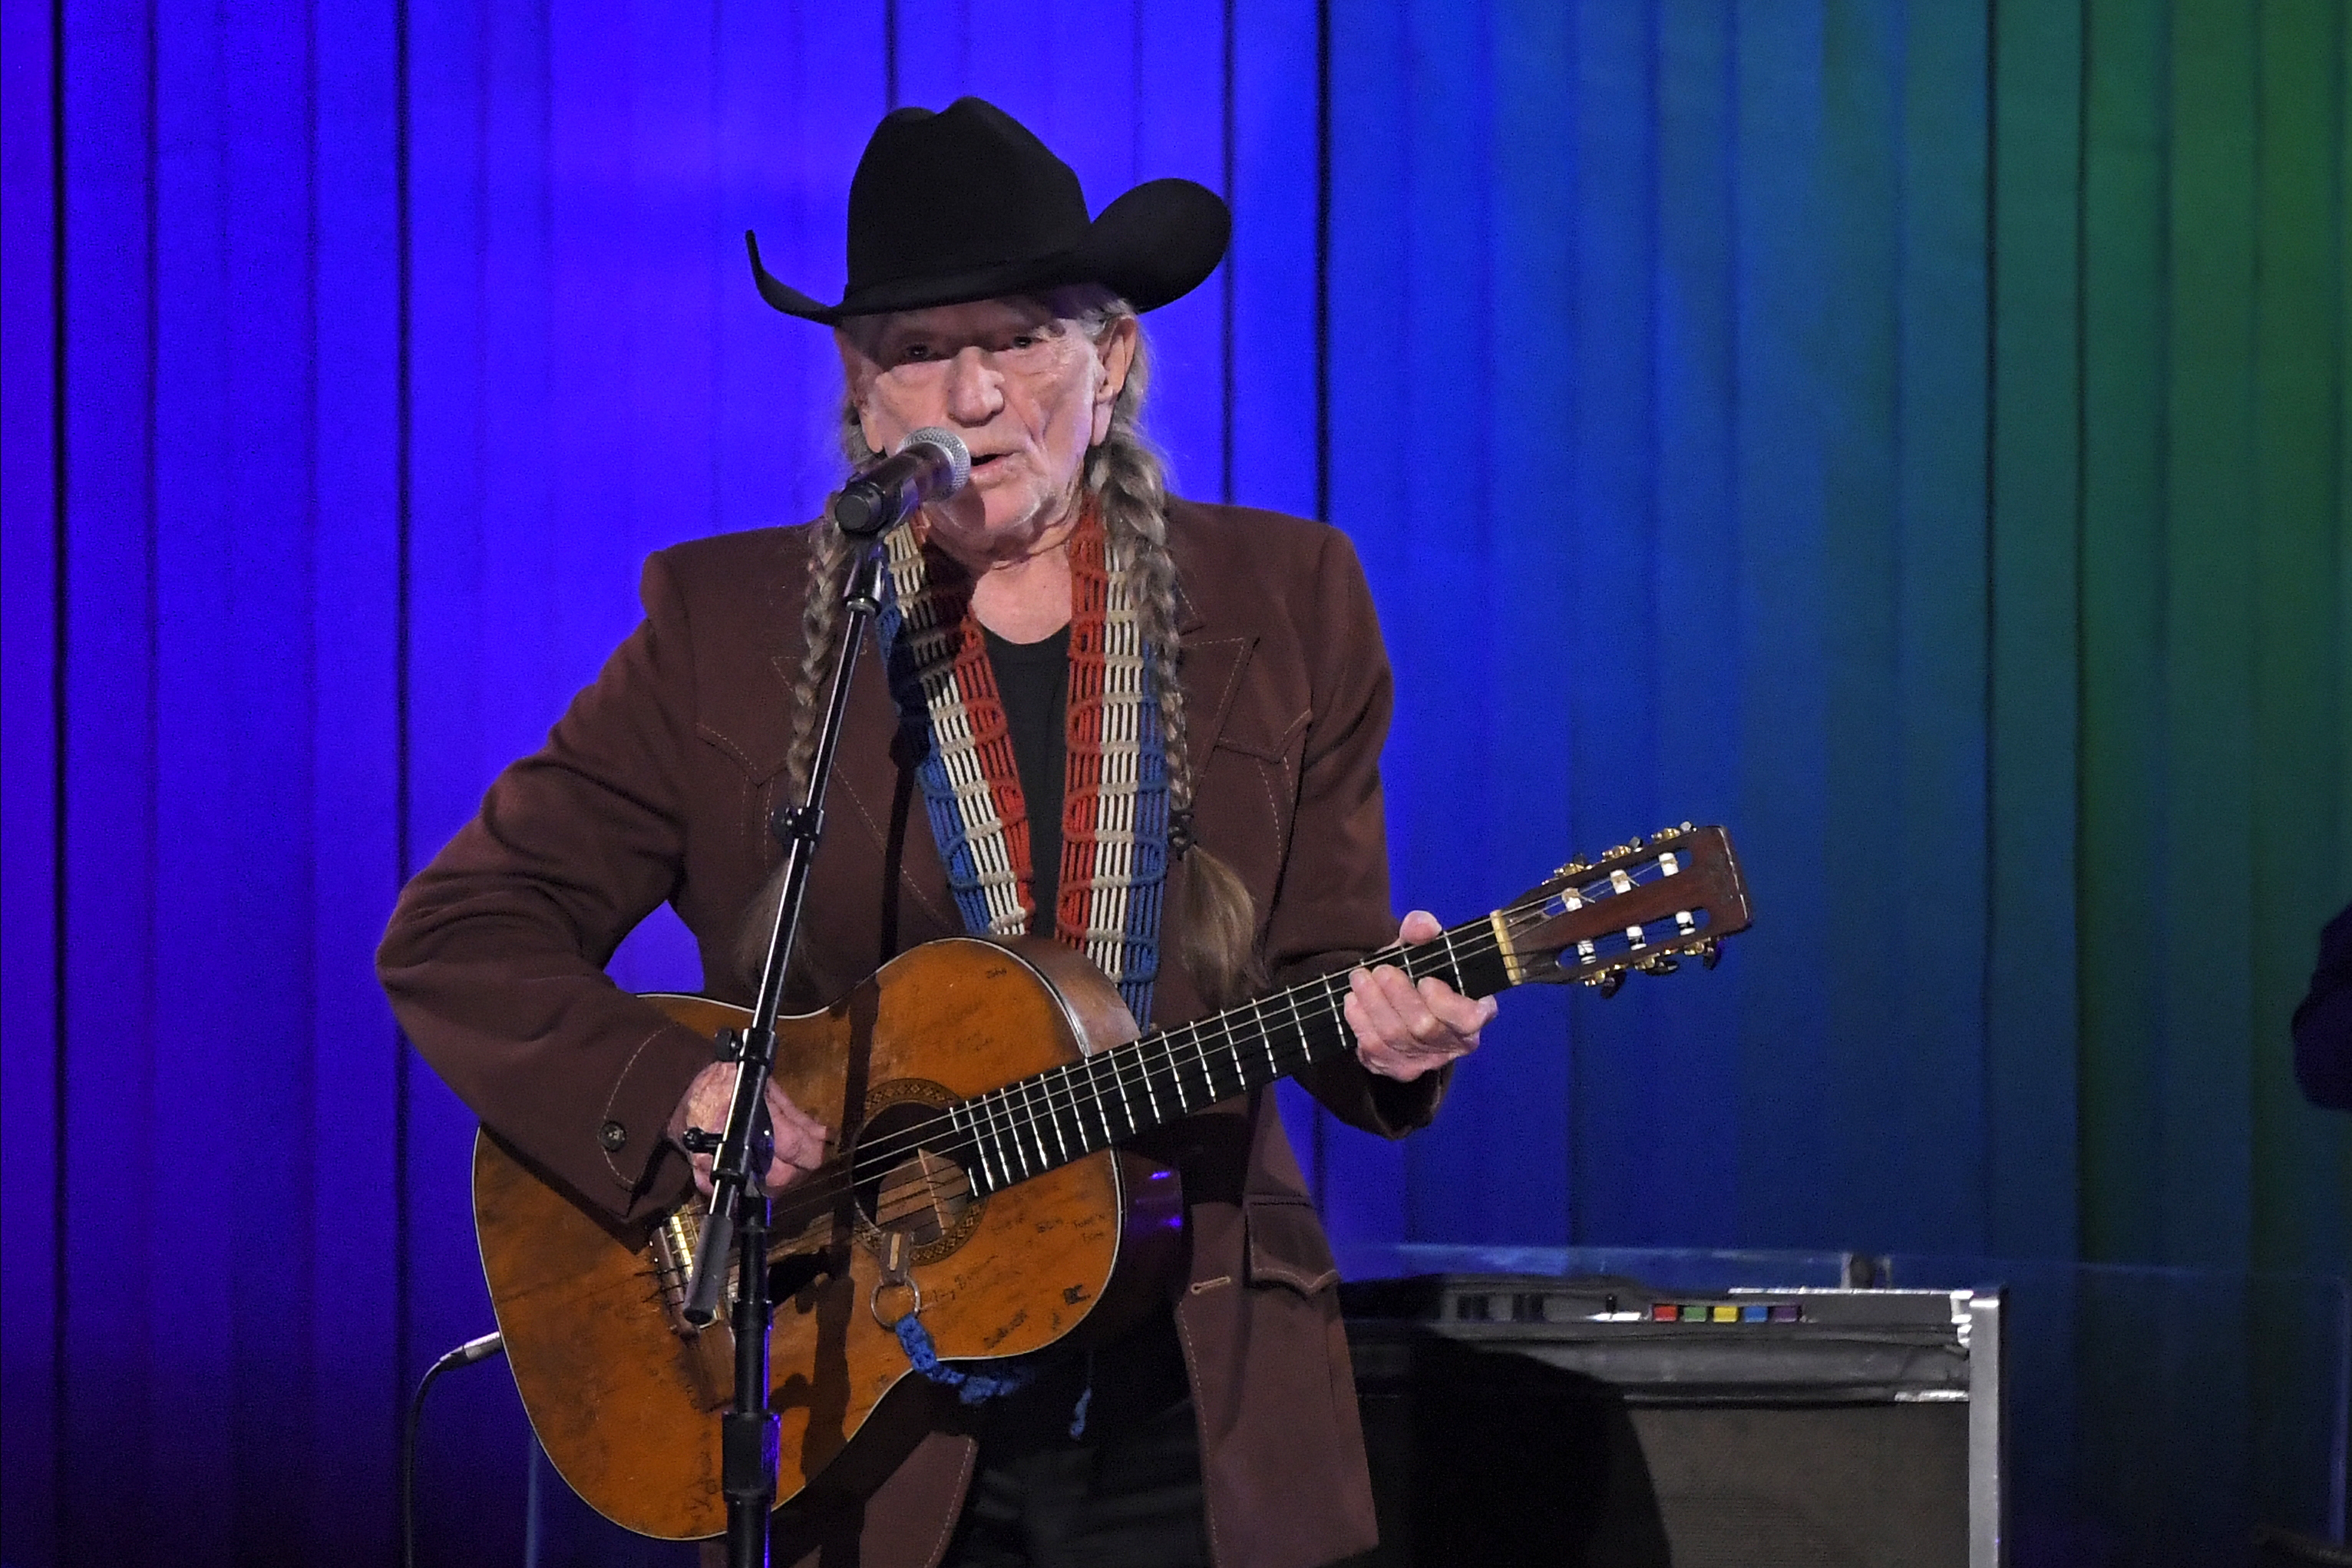 Willie Nelson performs at the CMA Awards ceremony earlier this month in Nashville, Tennessee.